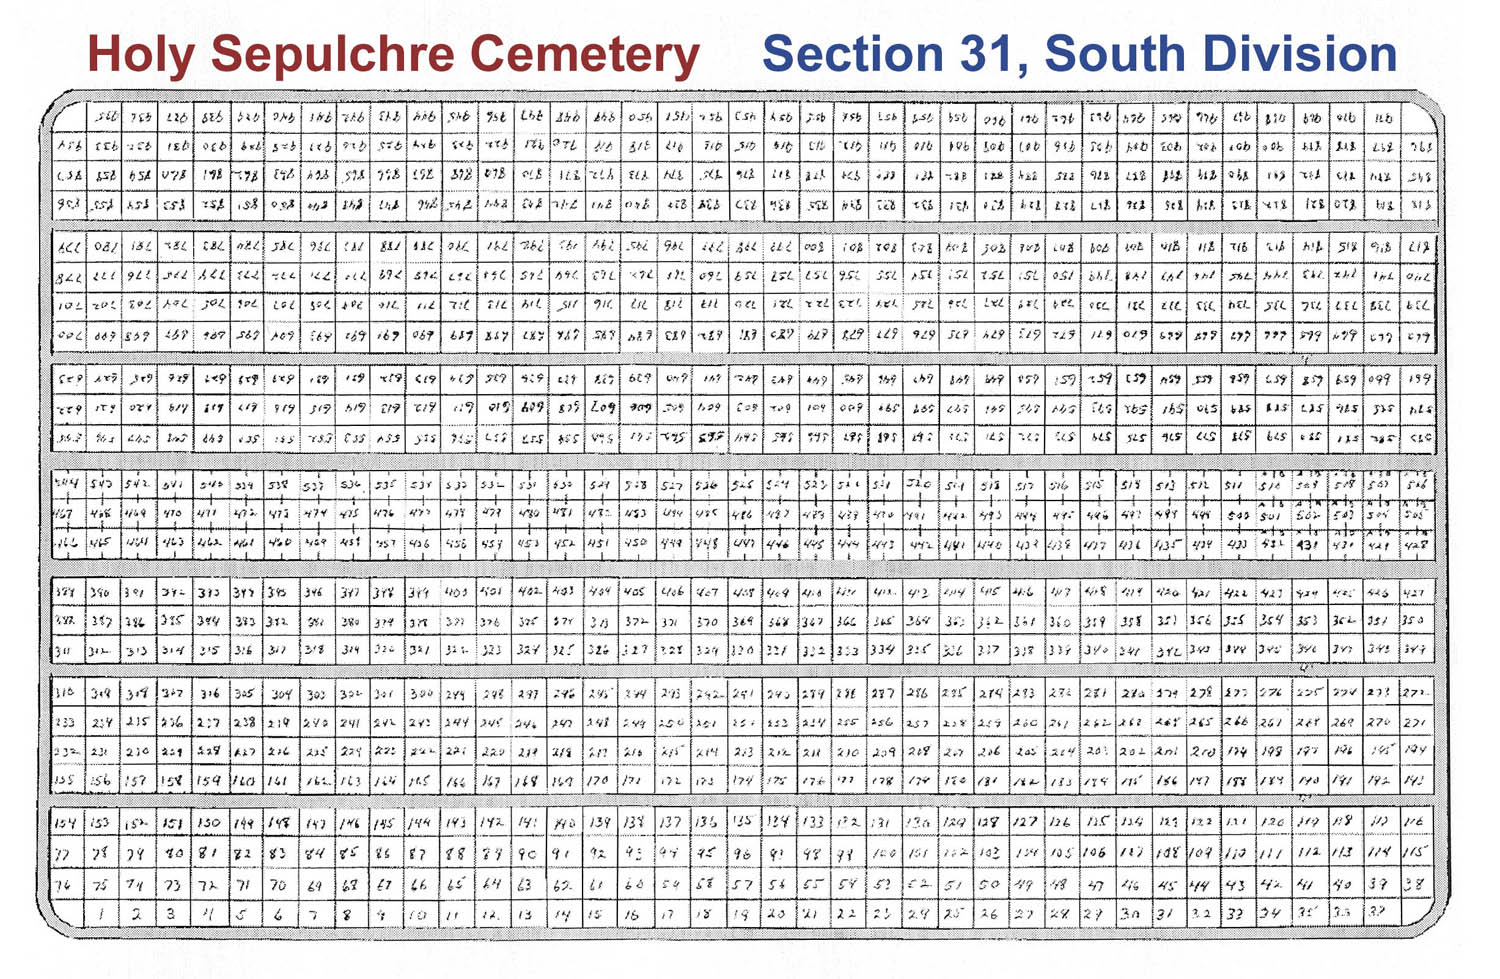 Veteran Burials In Sections 30